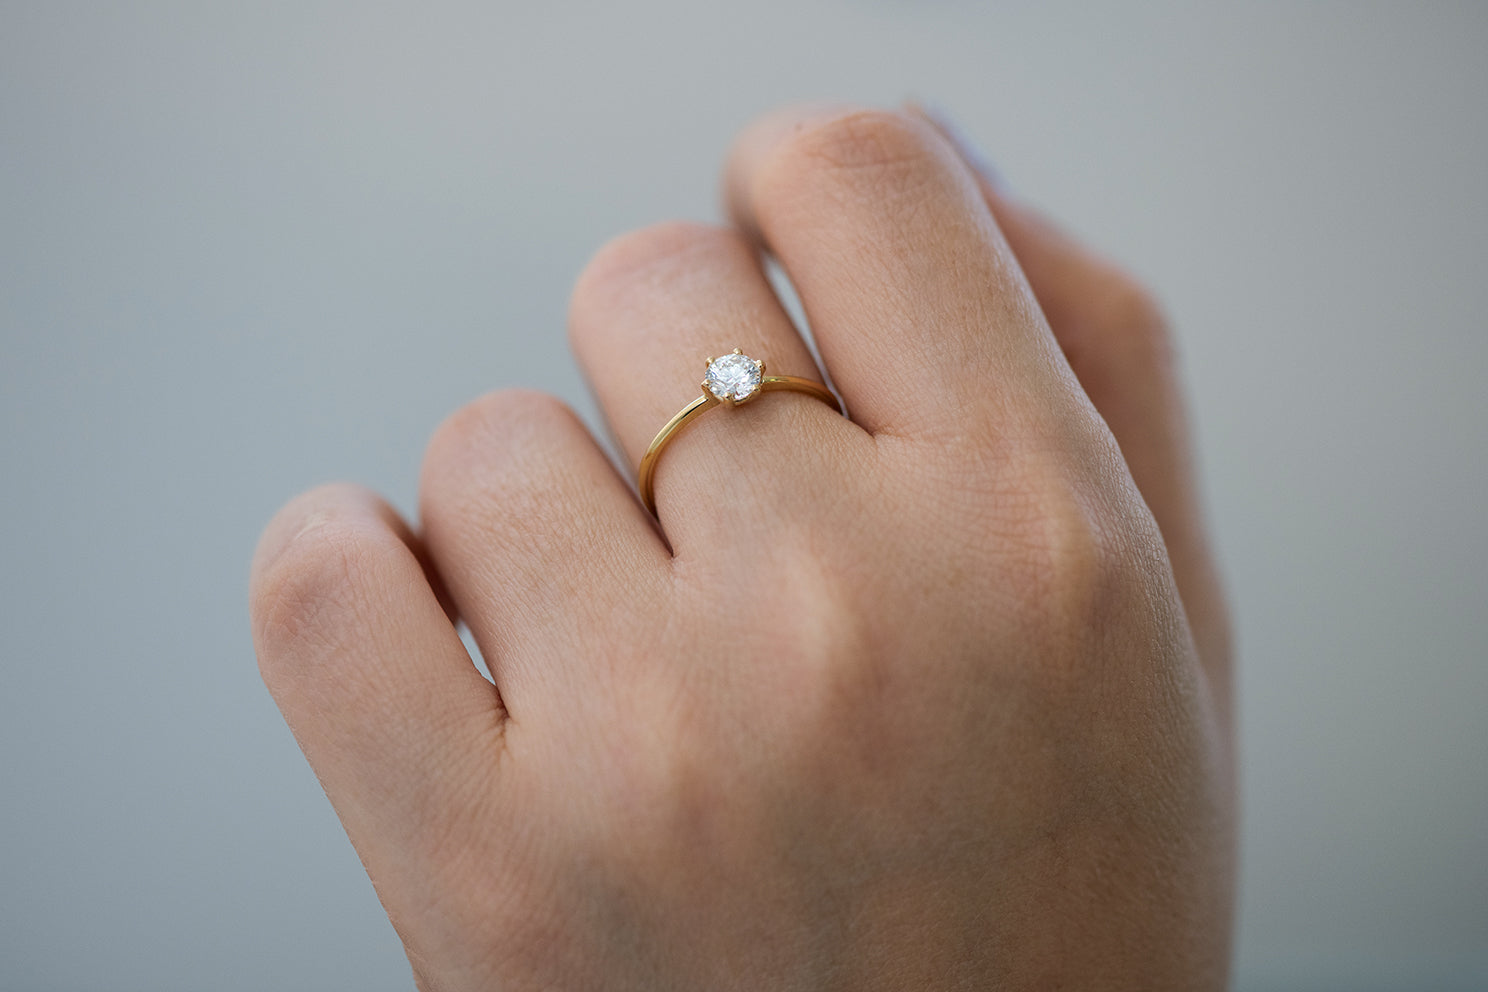 Solitaire Engagement Ring - Minimalist Diamond Ring on Hand Under View